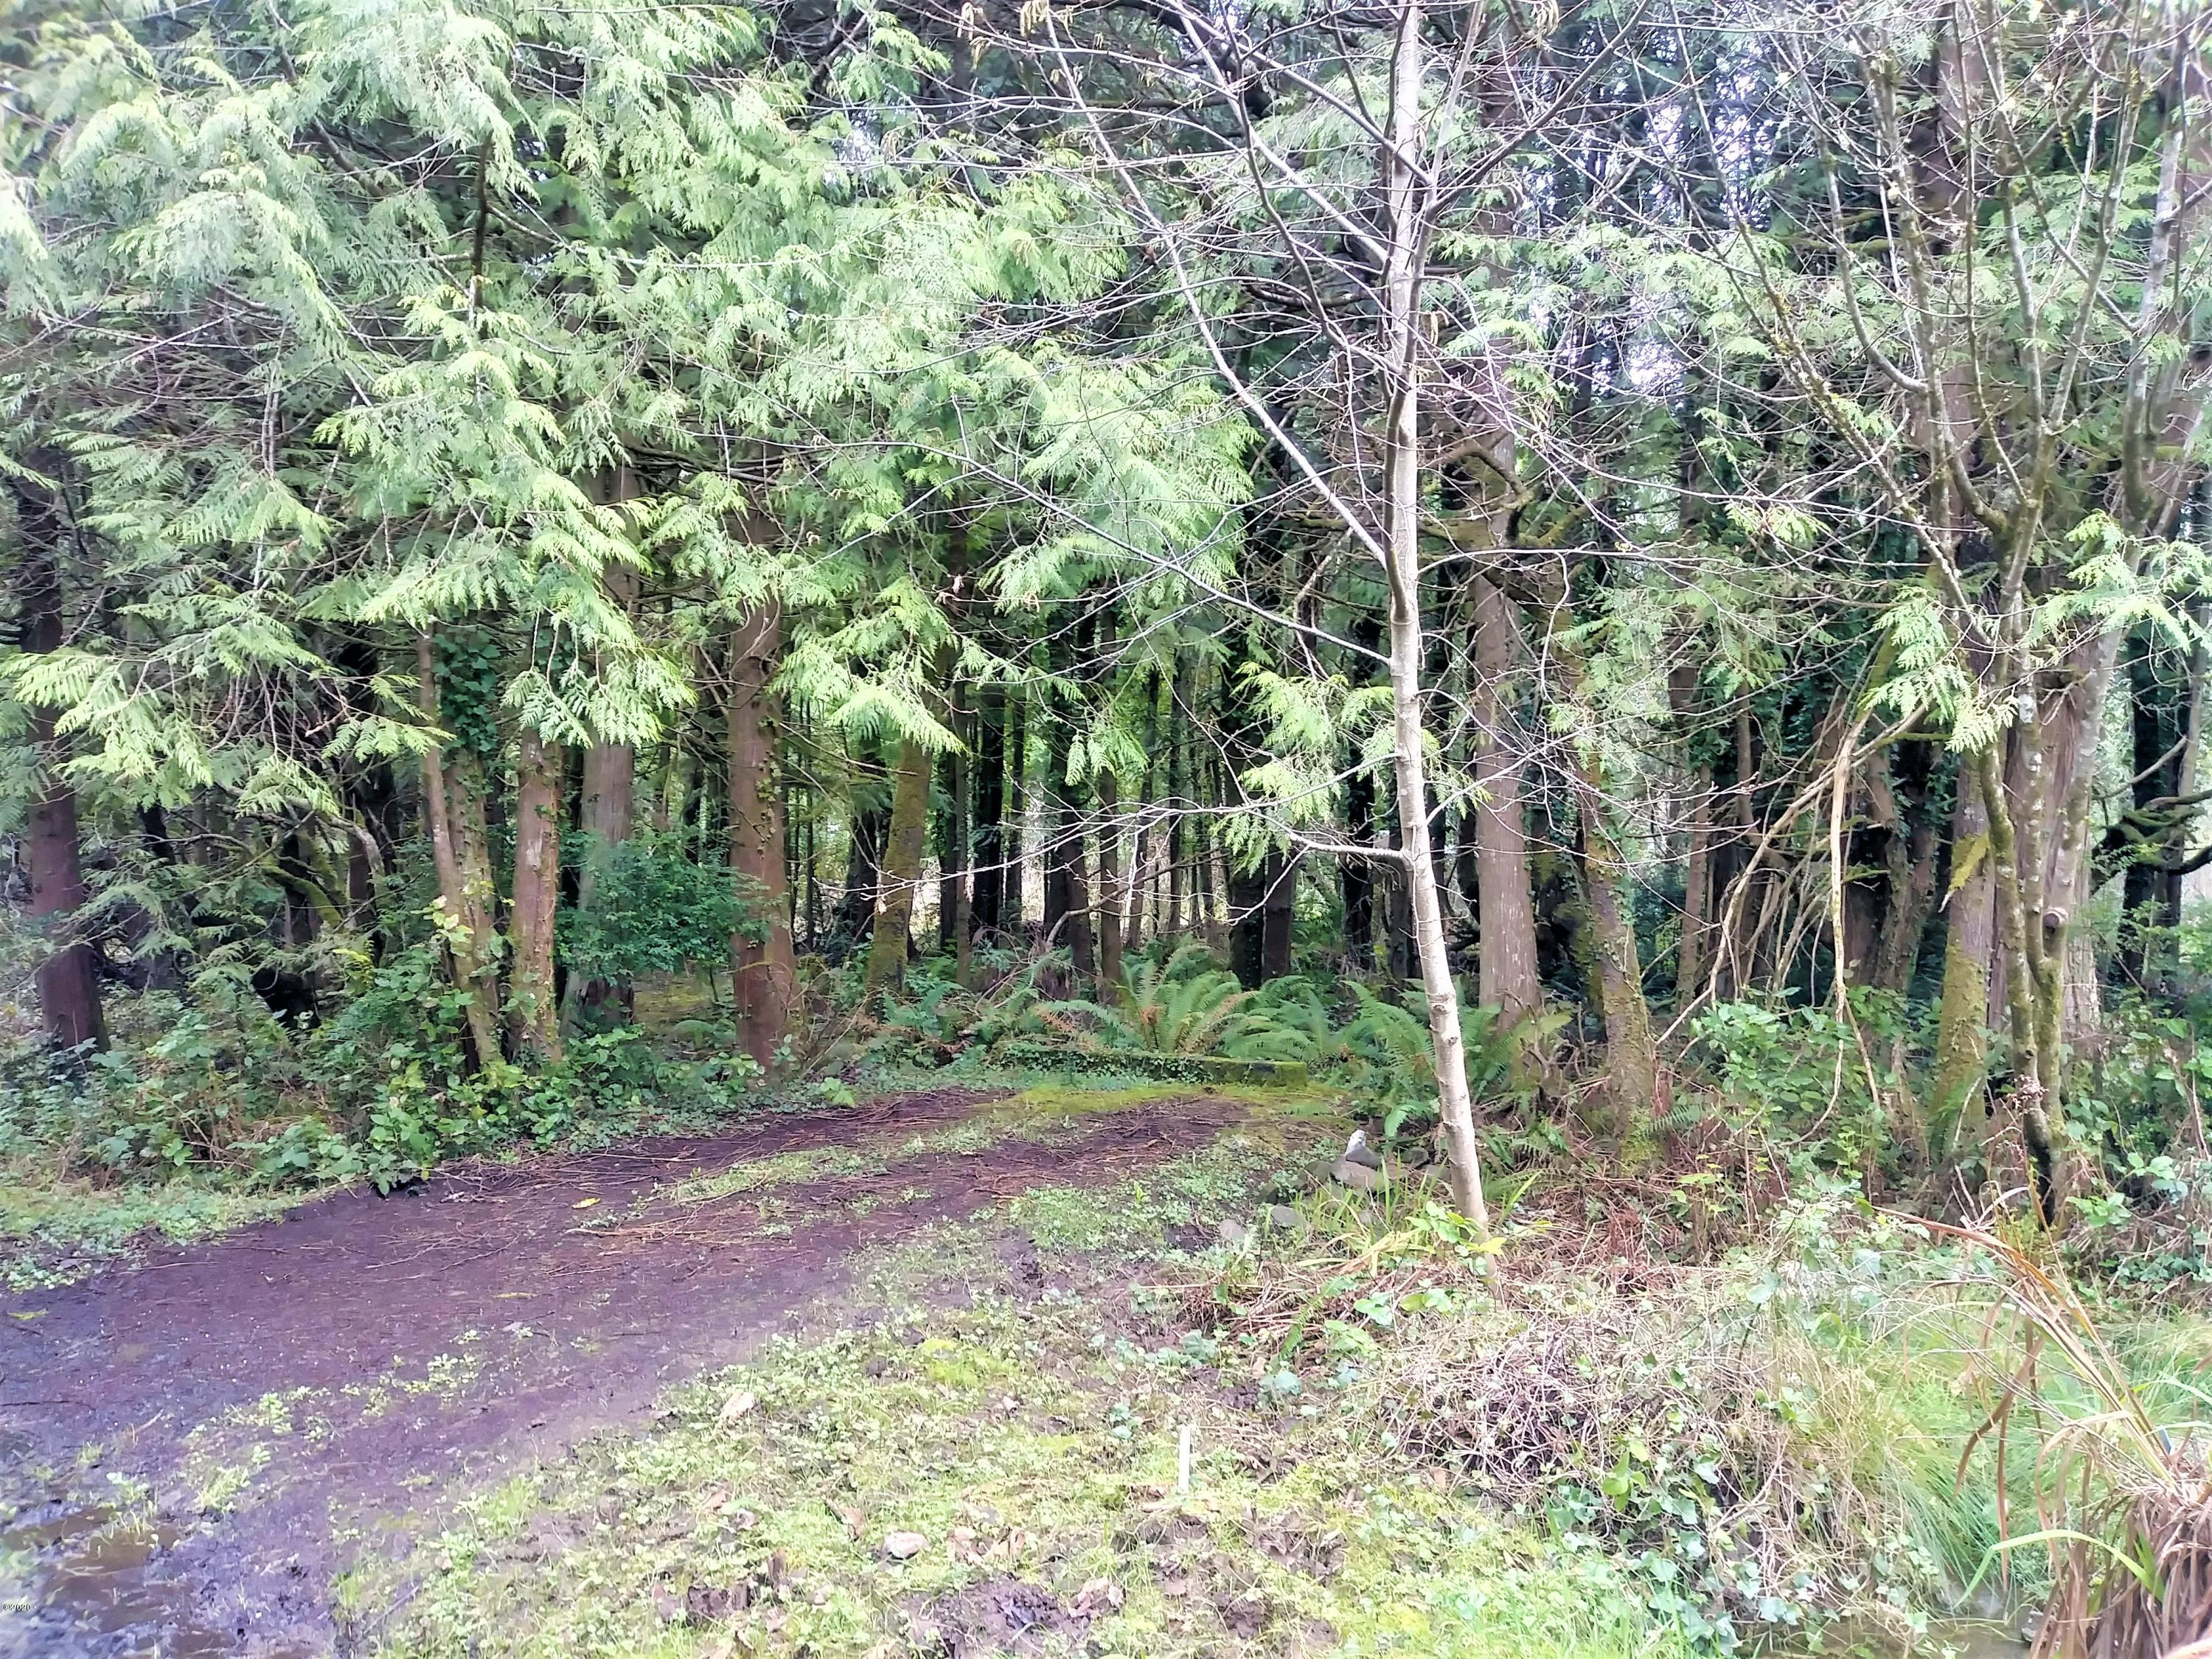 TL 117&118 Nevada, Yachats, OR 97498 - RV Parking area